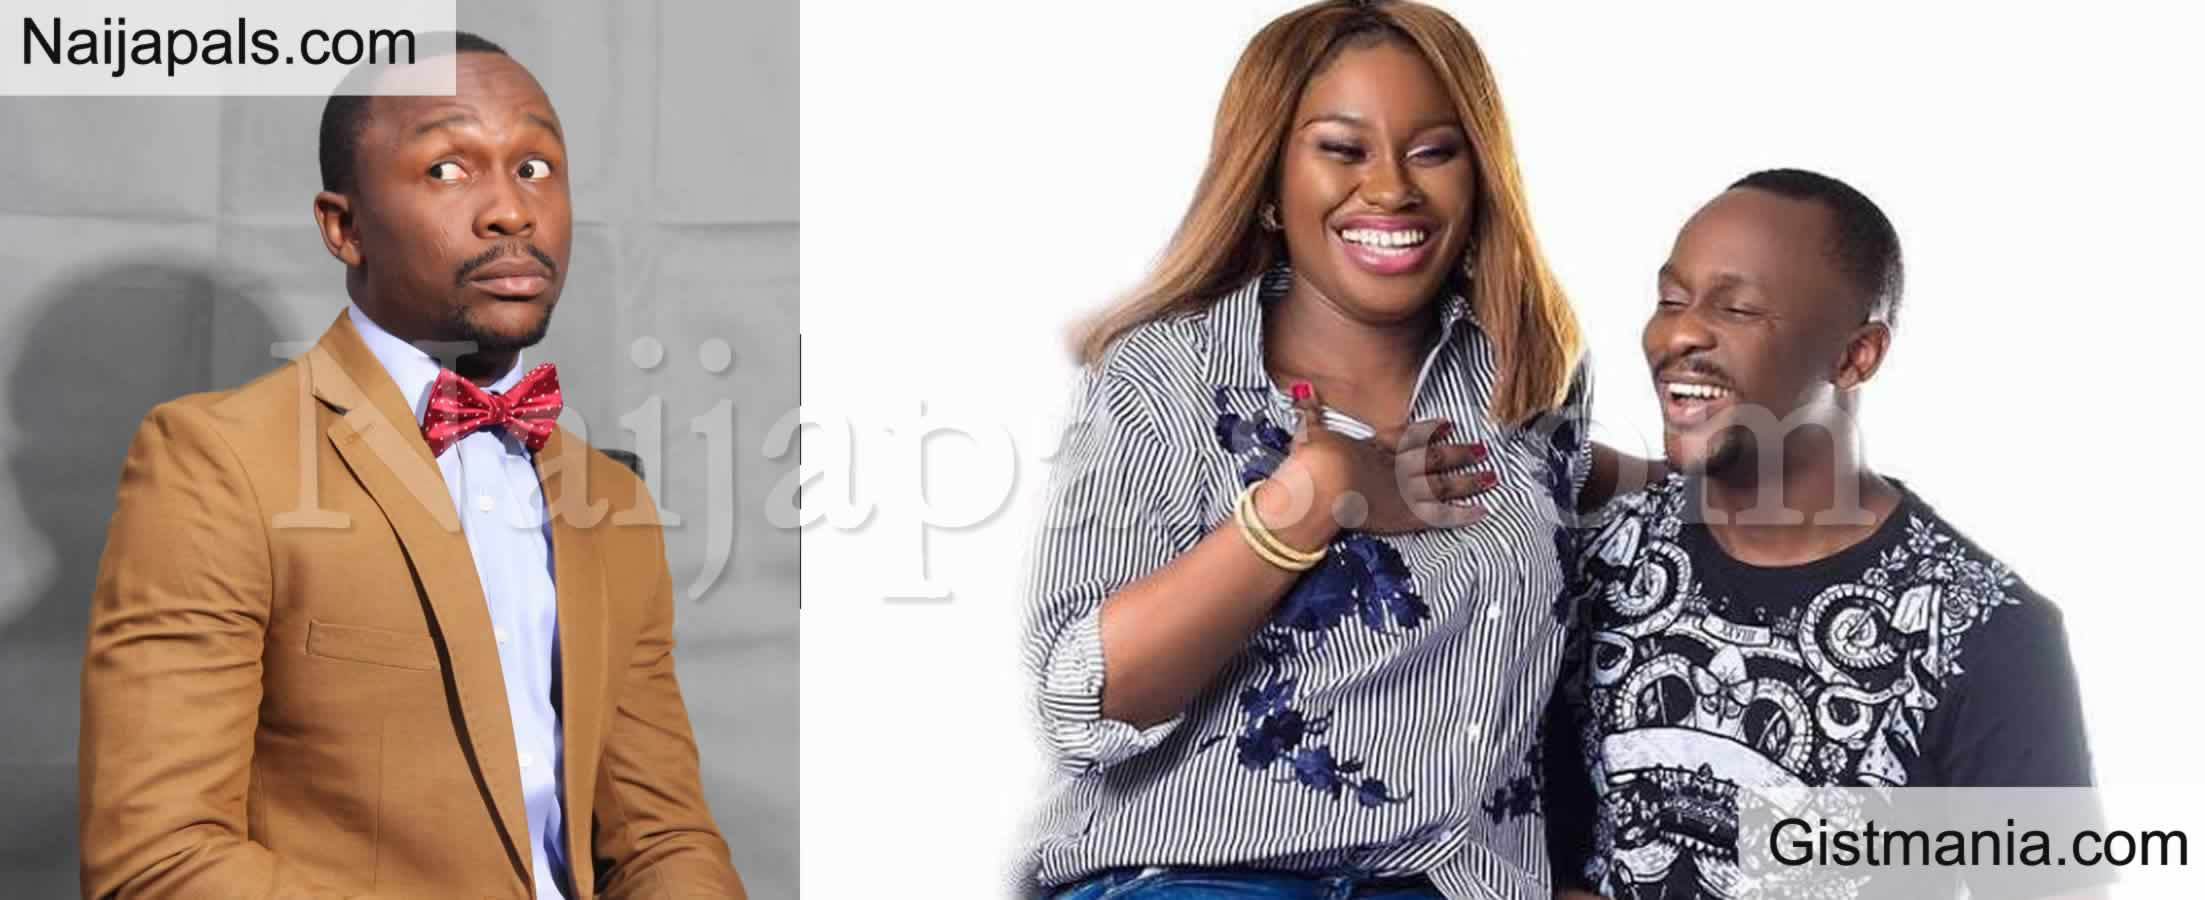 "<img alt='.' class='lazyload' data-src='https://img.gistmania.com/emot/comment.gif' /> <b>""Make Money First Before You Marry Because Women Prefer Money More""</b> - Comedian Ushbebe Advises Men"